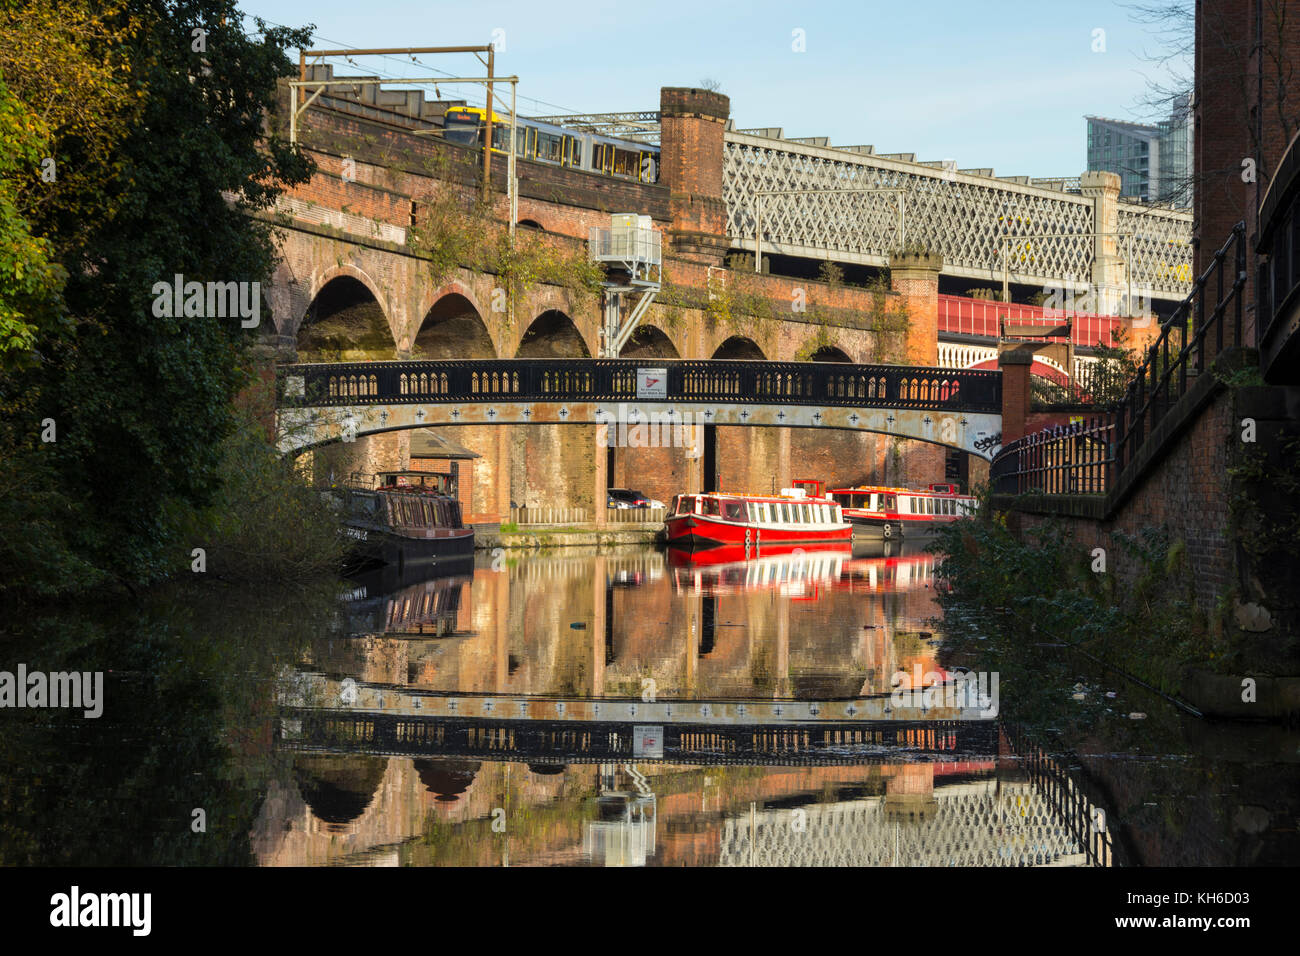 A footbridge, Victorian railway viaducts and canal boats reflected in the Bridgewater Canal at Castlefield, Manchester, England, UK. Stock Photo